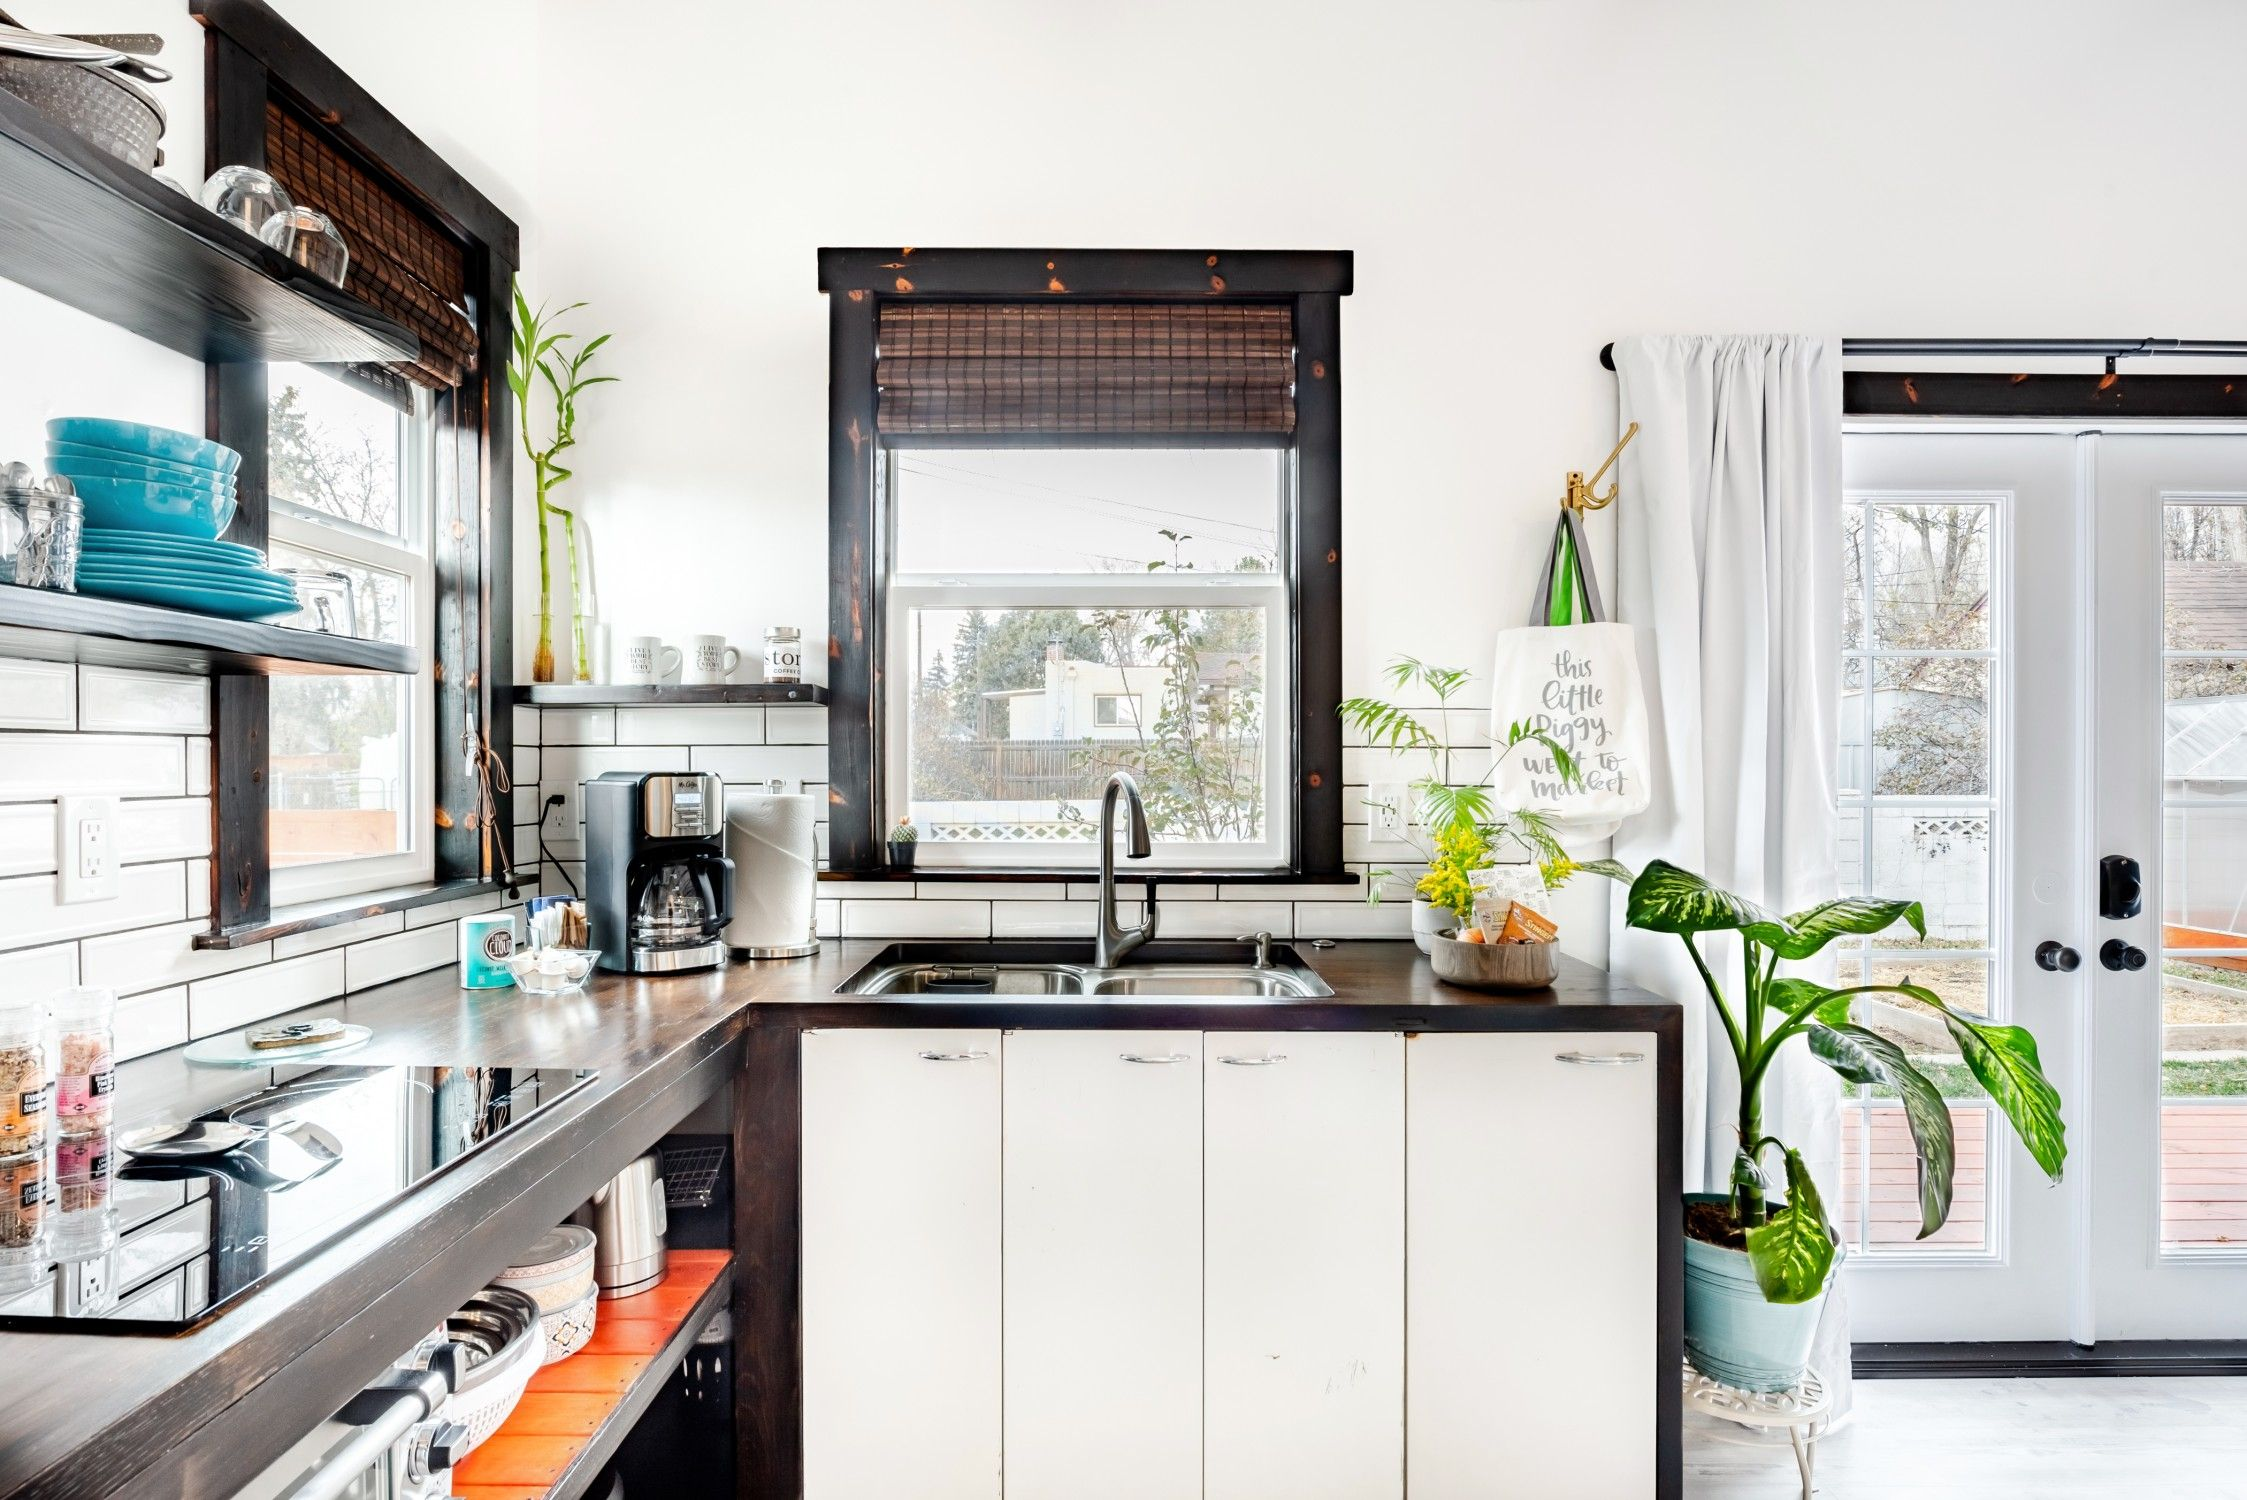 20 Tiny Houses In Colorado You Can Rent On Airbnb In 2021 Tiny House Kitchen Tiny Houses For Rent Tiny House Living Room